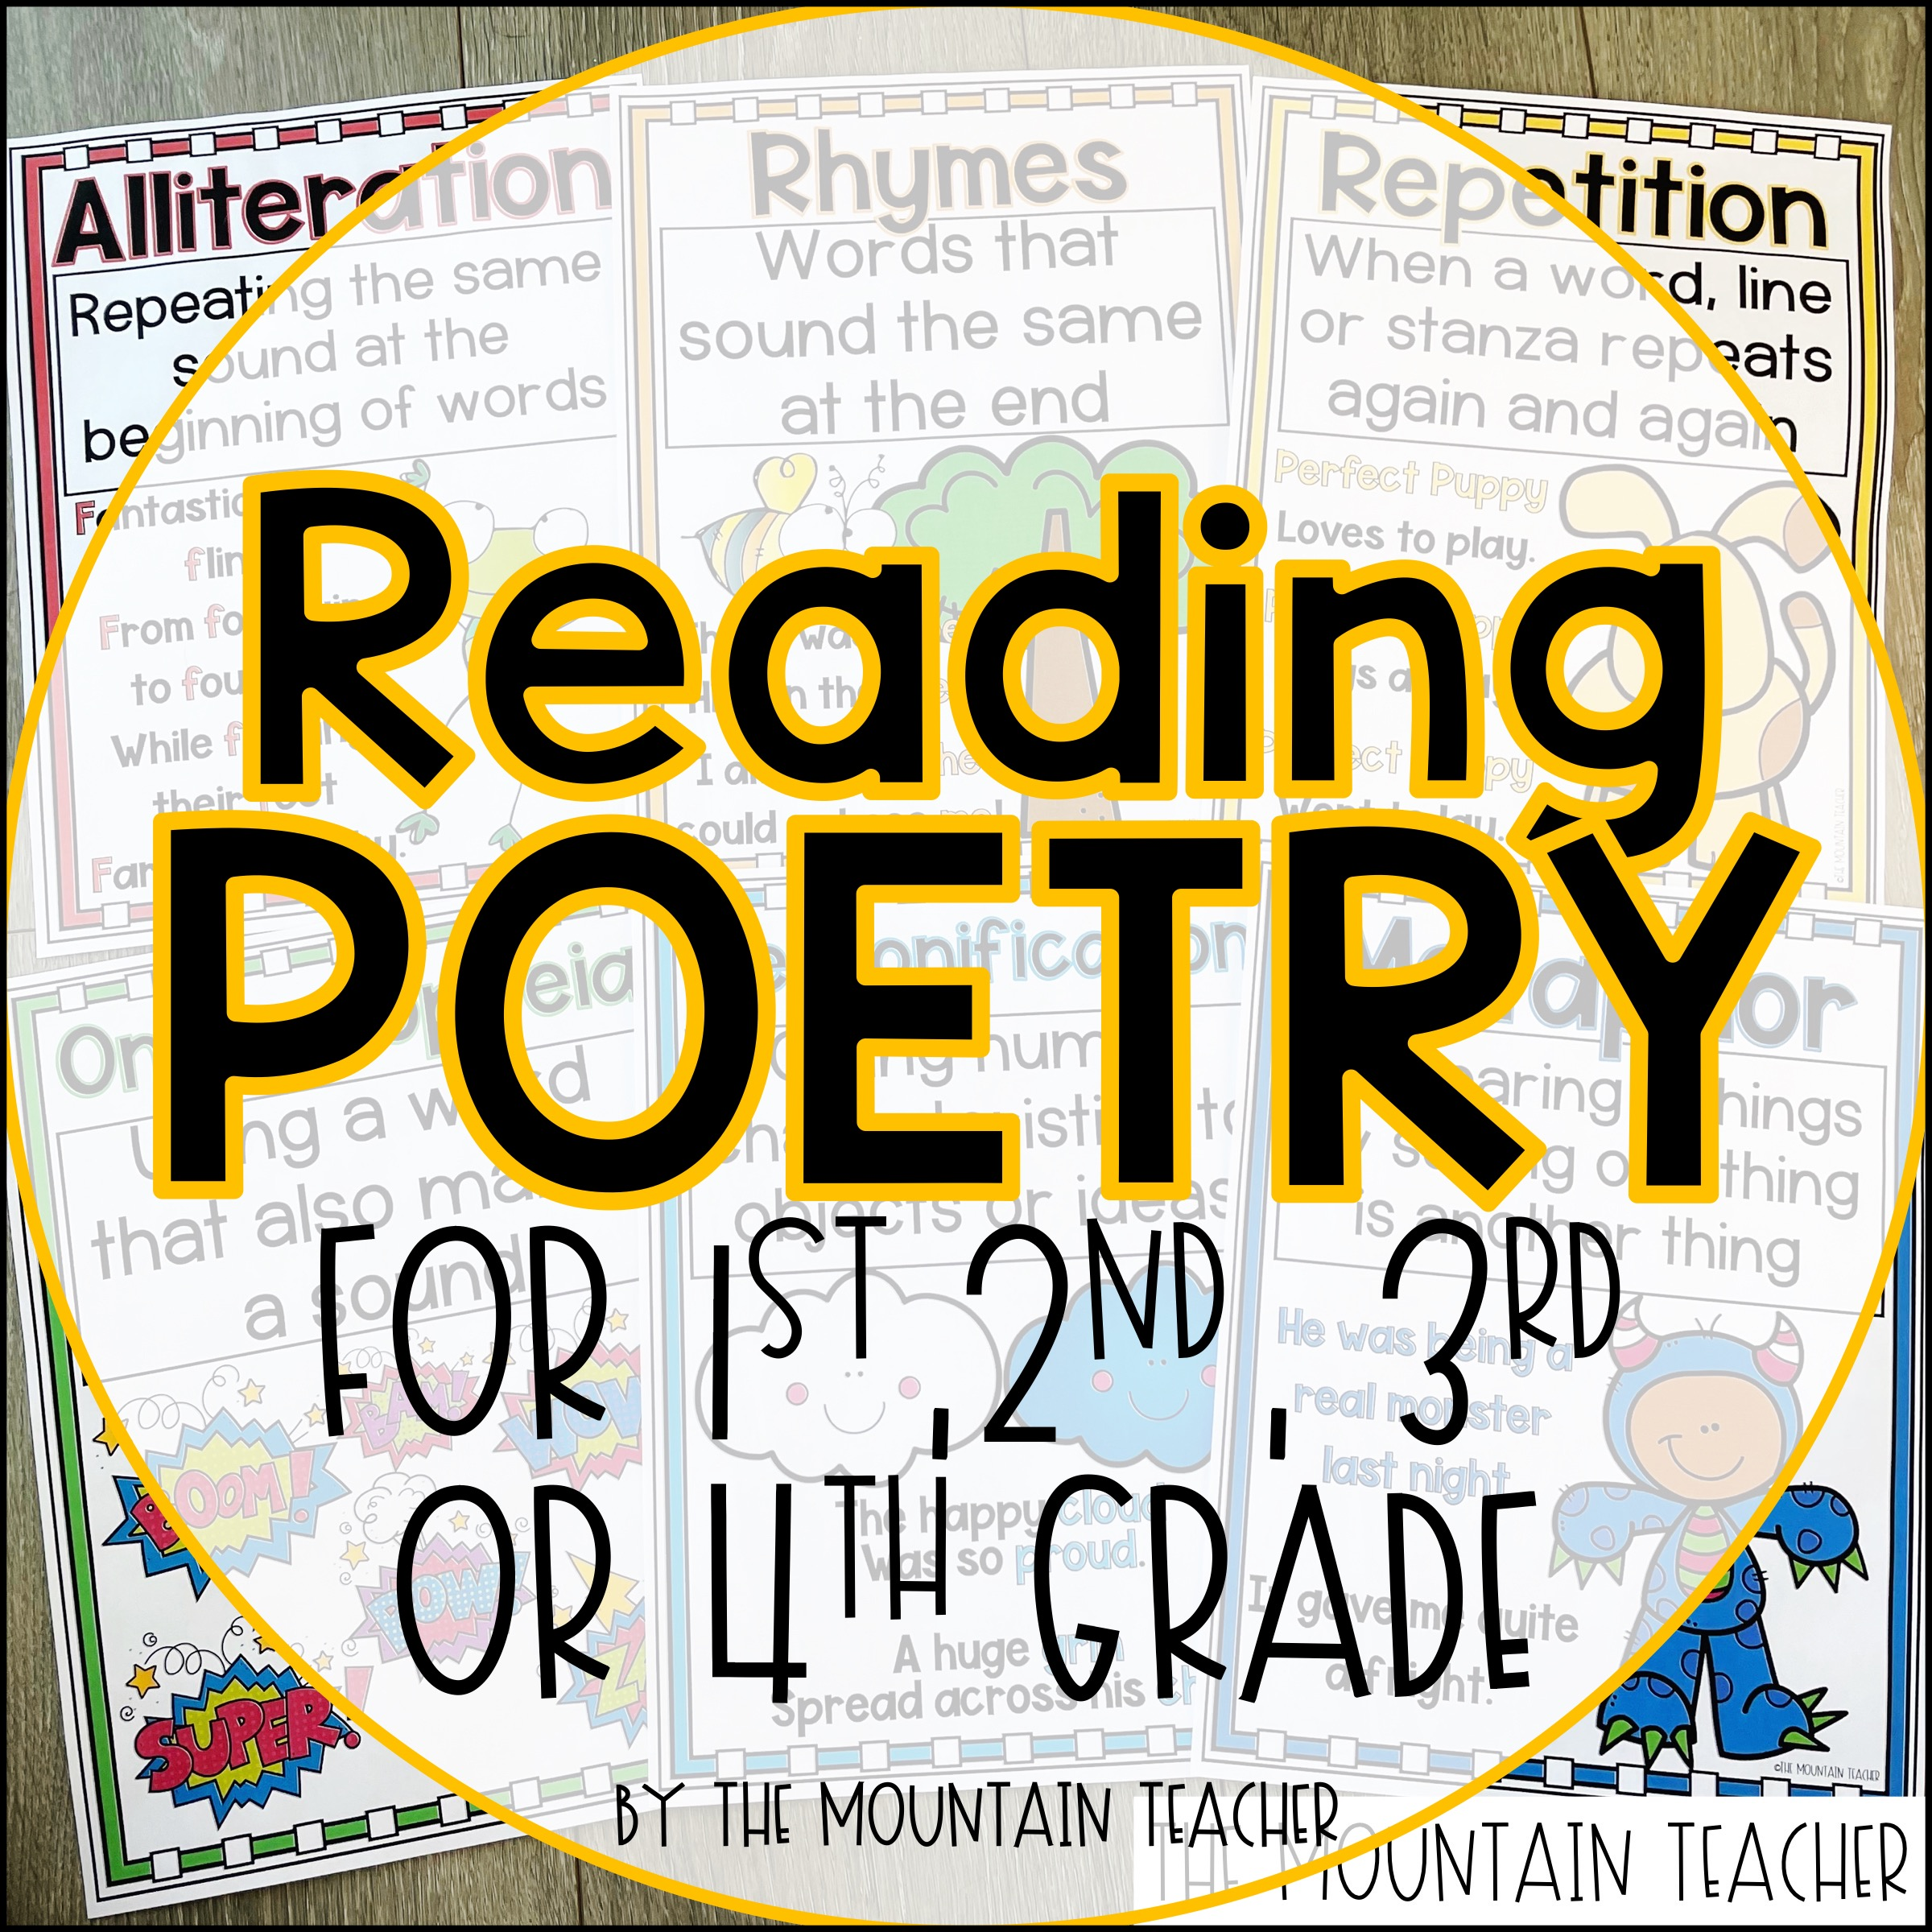 Reading Poetry for 1st 2nd 3rd and 4th Grade Blog Post by The Mountain Teacher 404